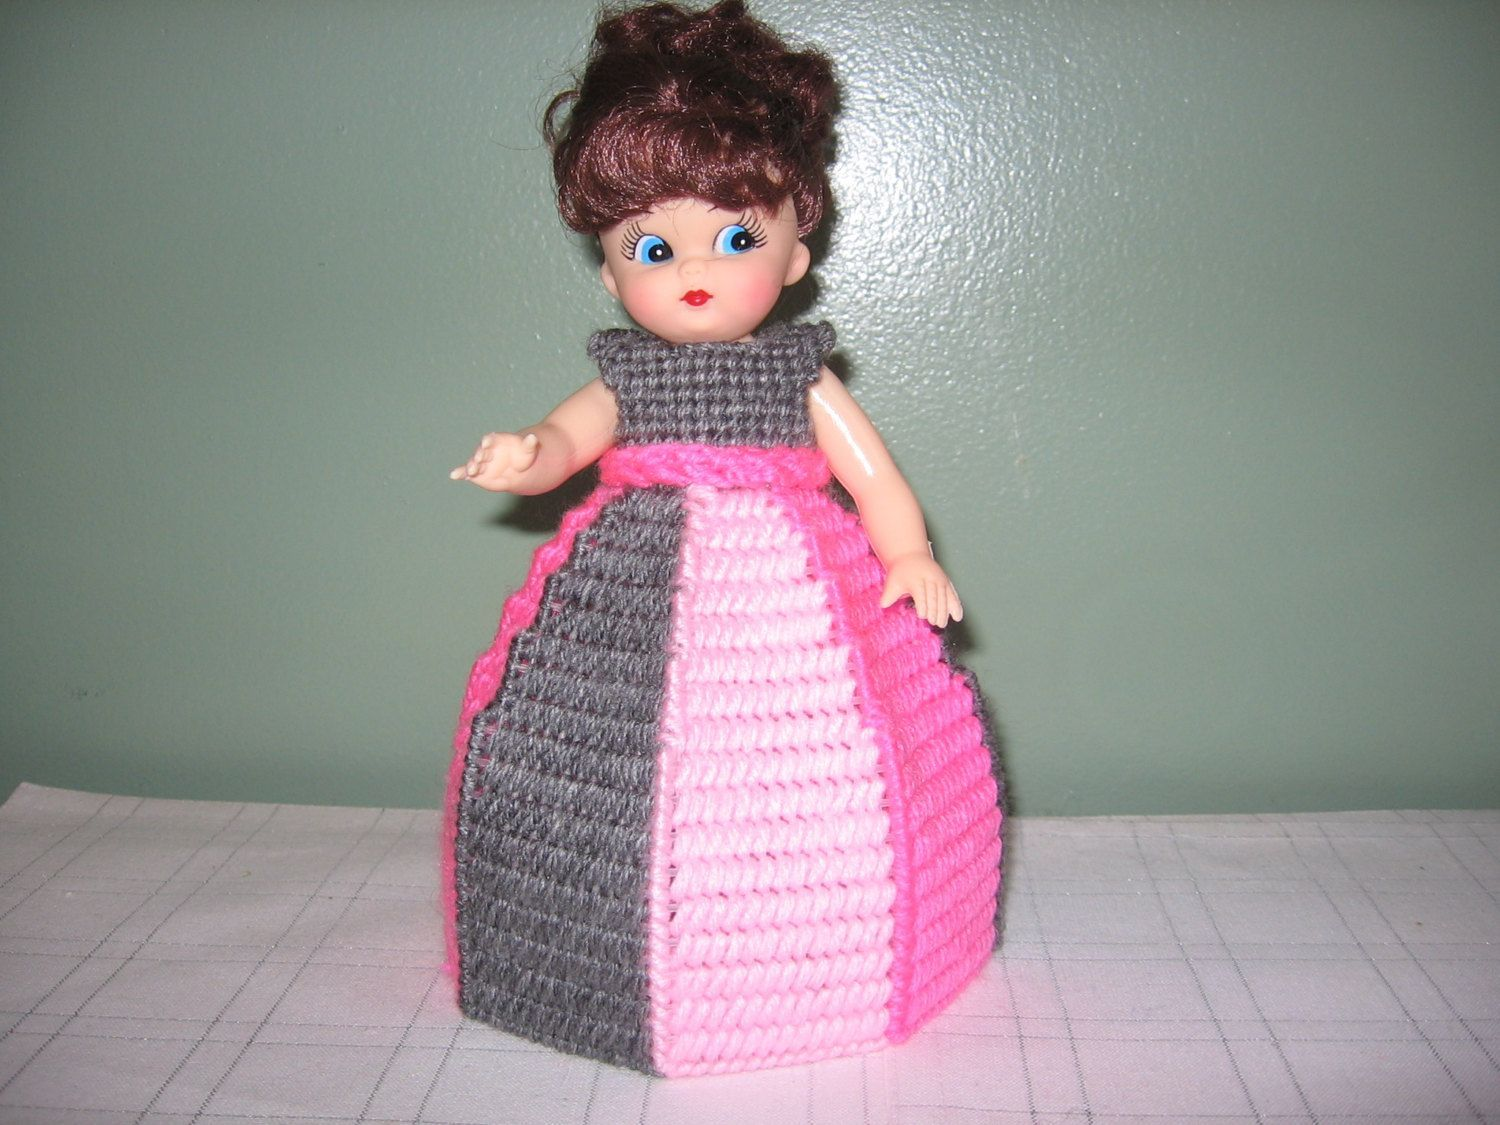 Gray/Hot Pink/Light Pink Collectible Doll - use for decoration or Air Freshner!! by CreationsbyAMJ on Etsy #airfreshnerdolls Gray/Hot Pink/Light Pink Collectible Doll - use for decoration or Air Freshner!! by CreationsbyAMJ on Etsy #airfreshnerdolls